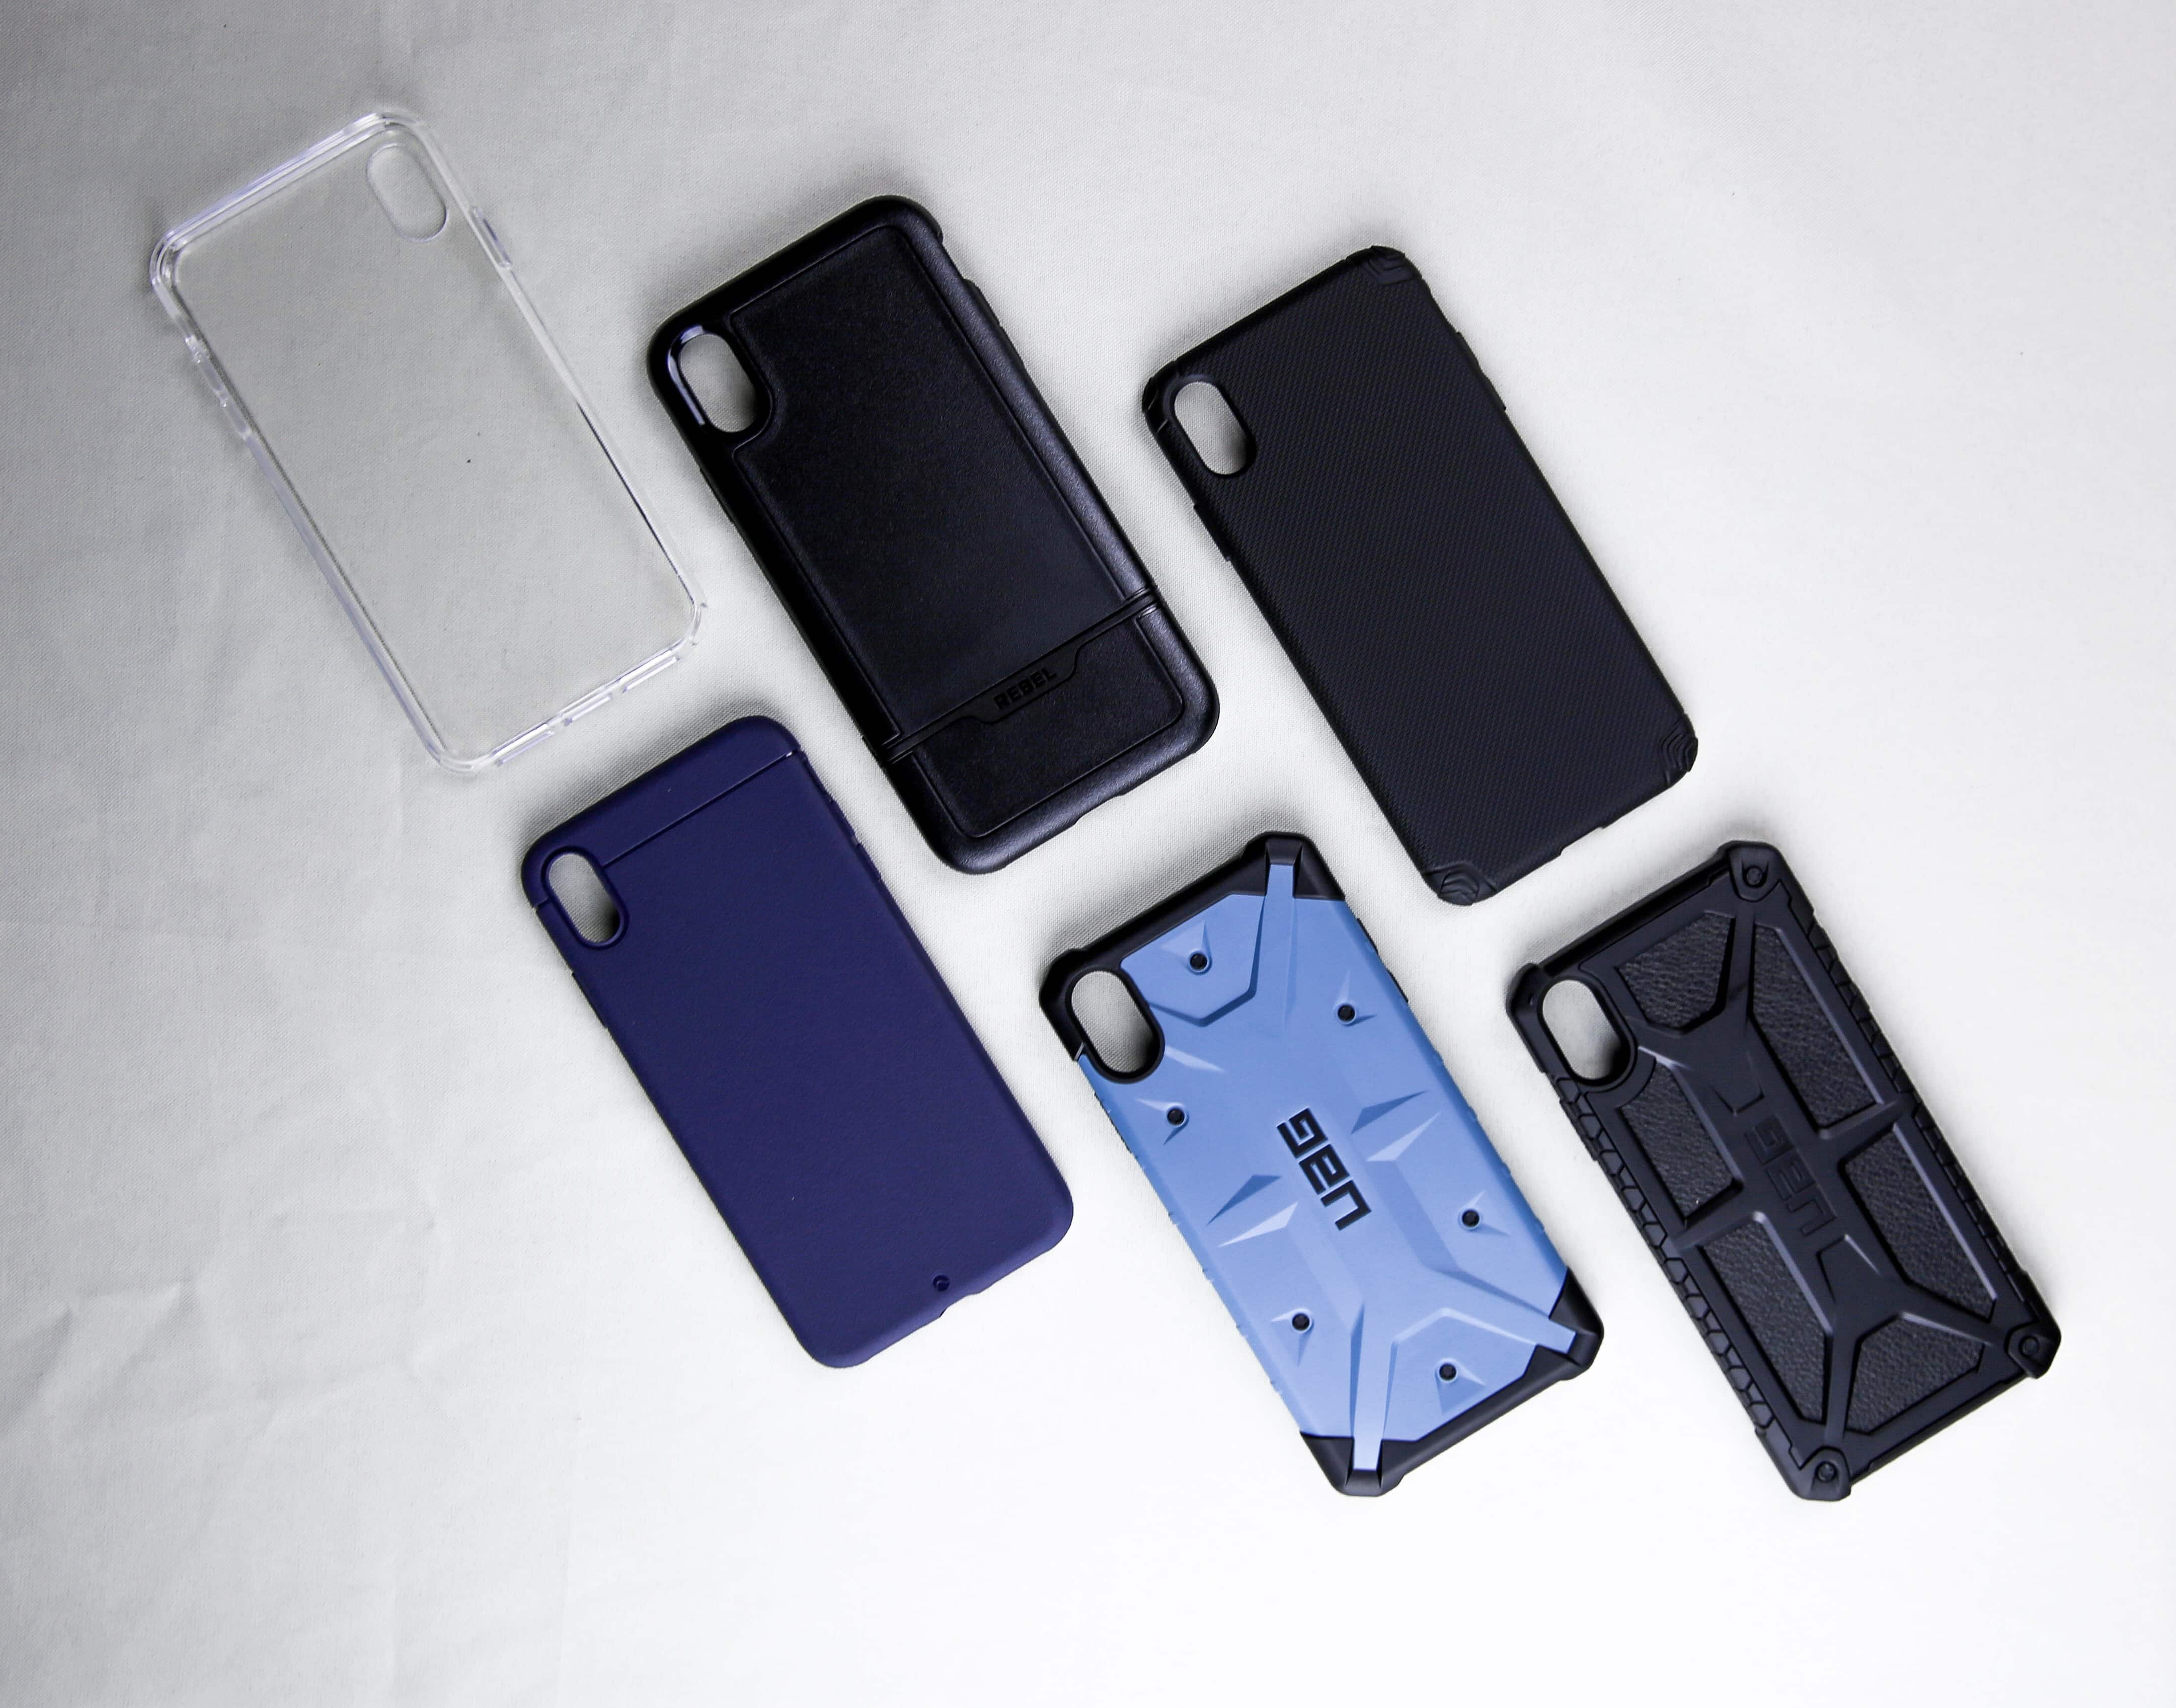 Sport style and durability with a collection of our favorite iPhone XS Max cases.